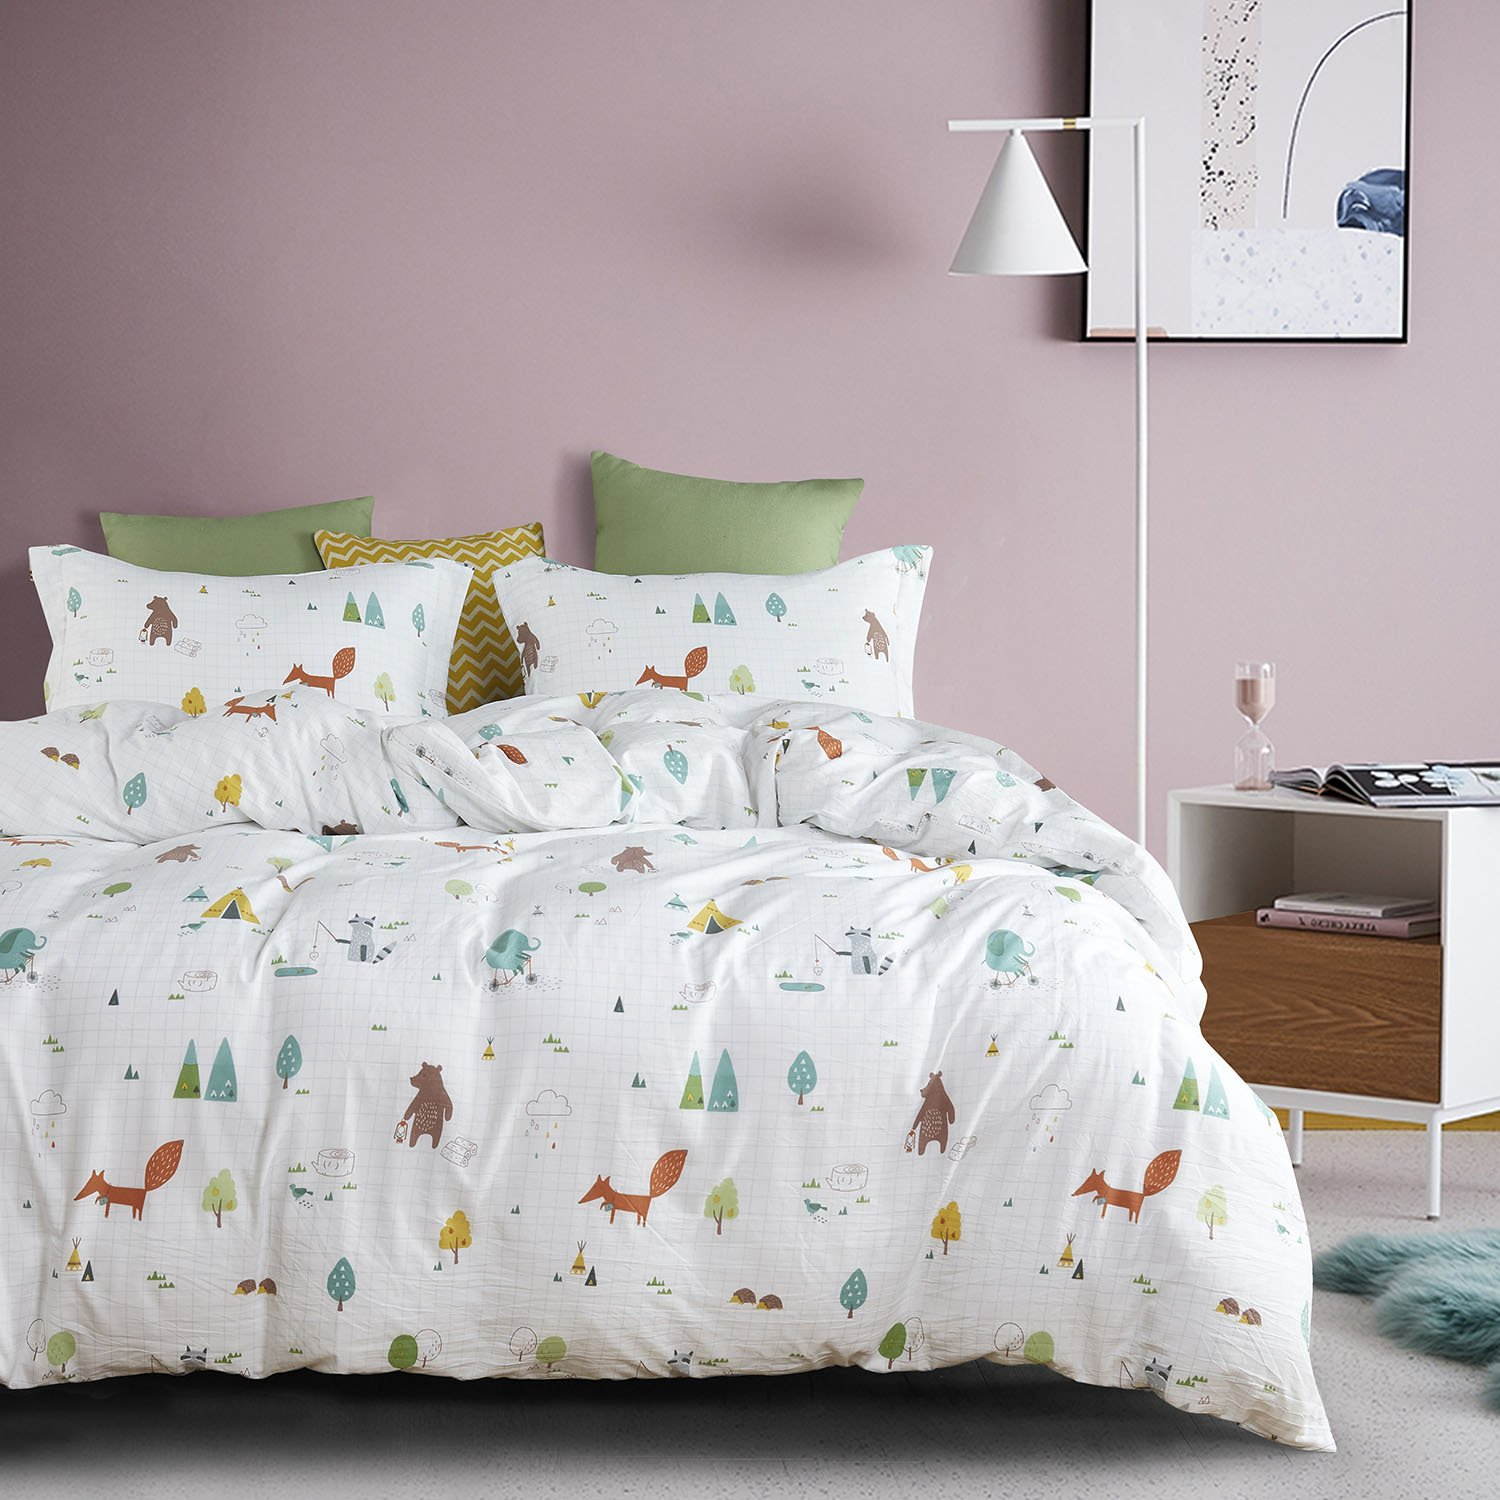 Wake In Cloud - Zoo Comforter Set Queen, 3-Piece Fox Elephant Bear Animals Cartoon Pattern Printed, Soft Washed Microfiber Bedding for Kids or Teens (3pcs, Queen Size) by Wake In Cloud (Image #2)